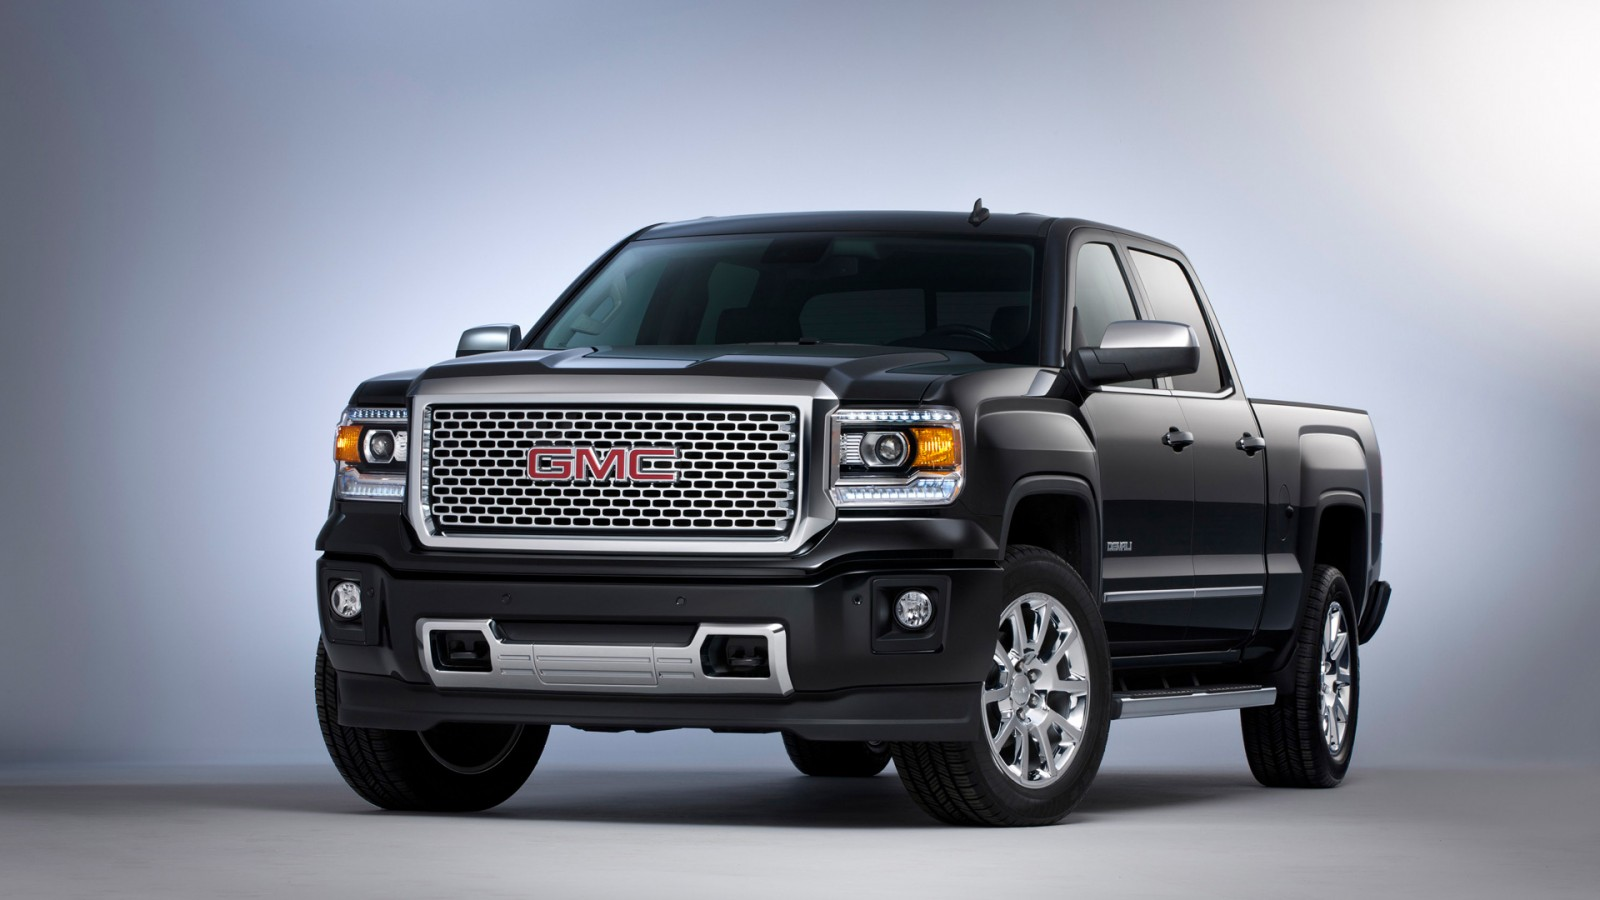 2014 GMC Sierra Denali Wallpaper | HD Car Wallpapers | ID ...